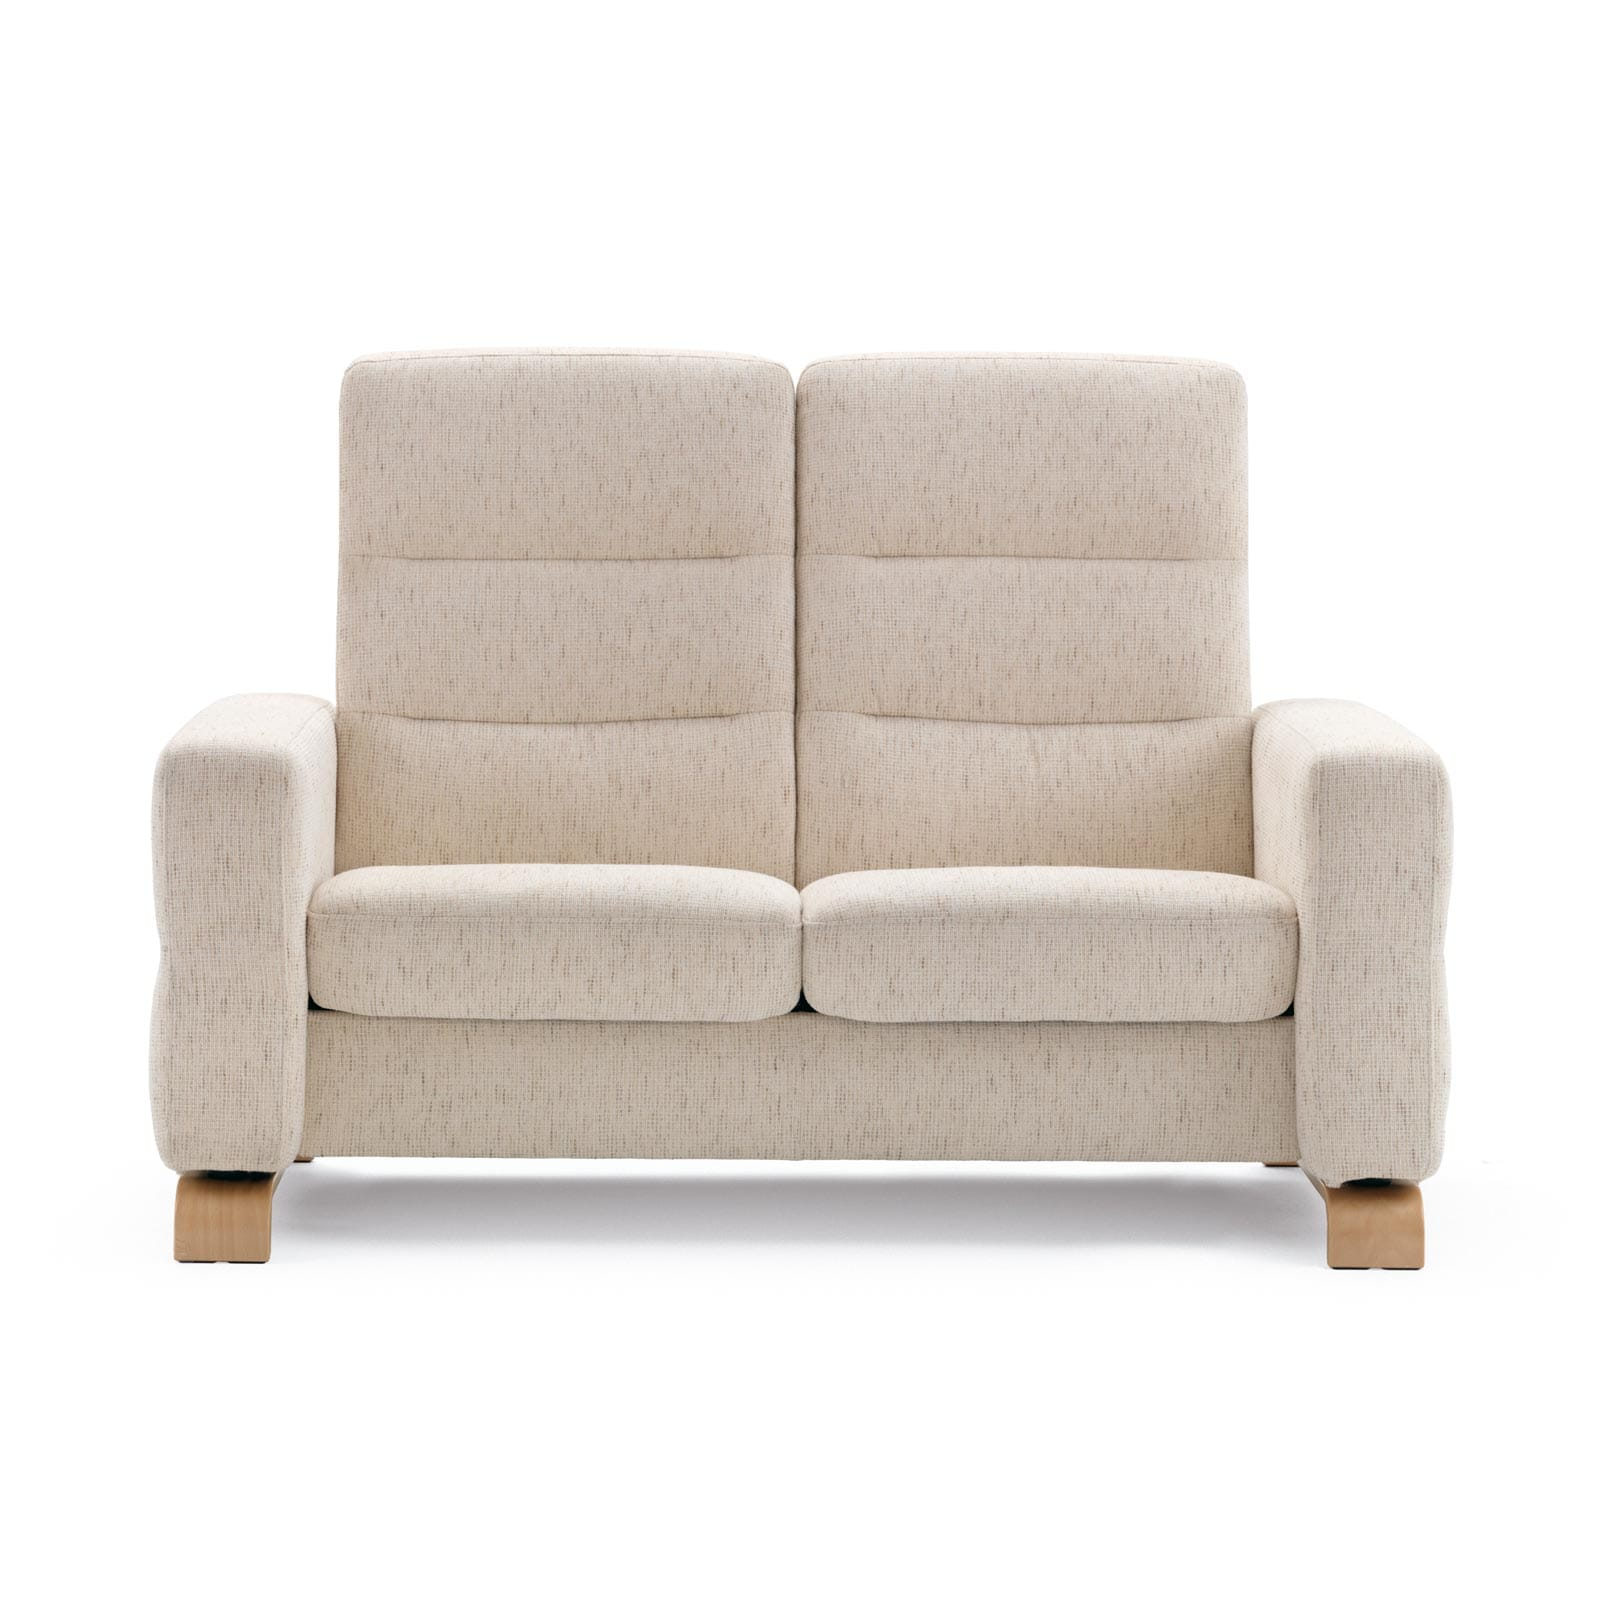 Stressless Sofa 2 Sitzer Wave M Hoch Silva Light Beige